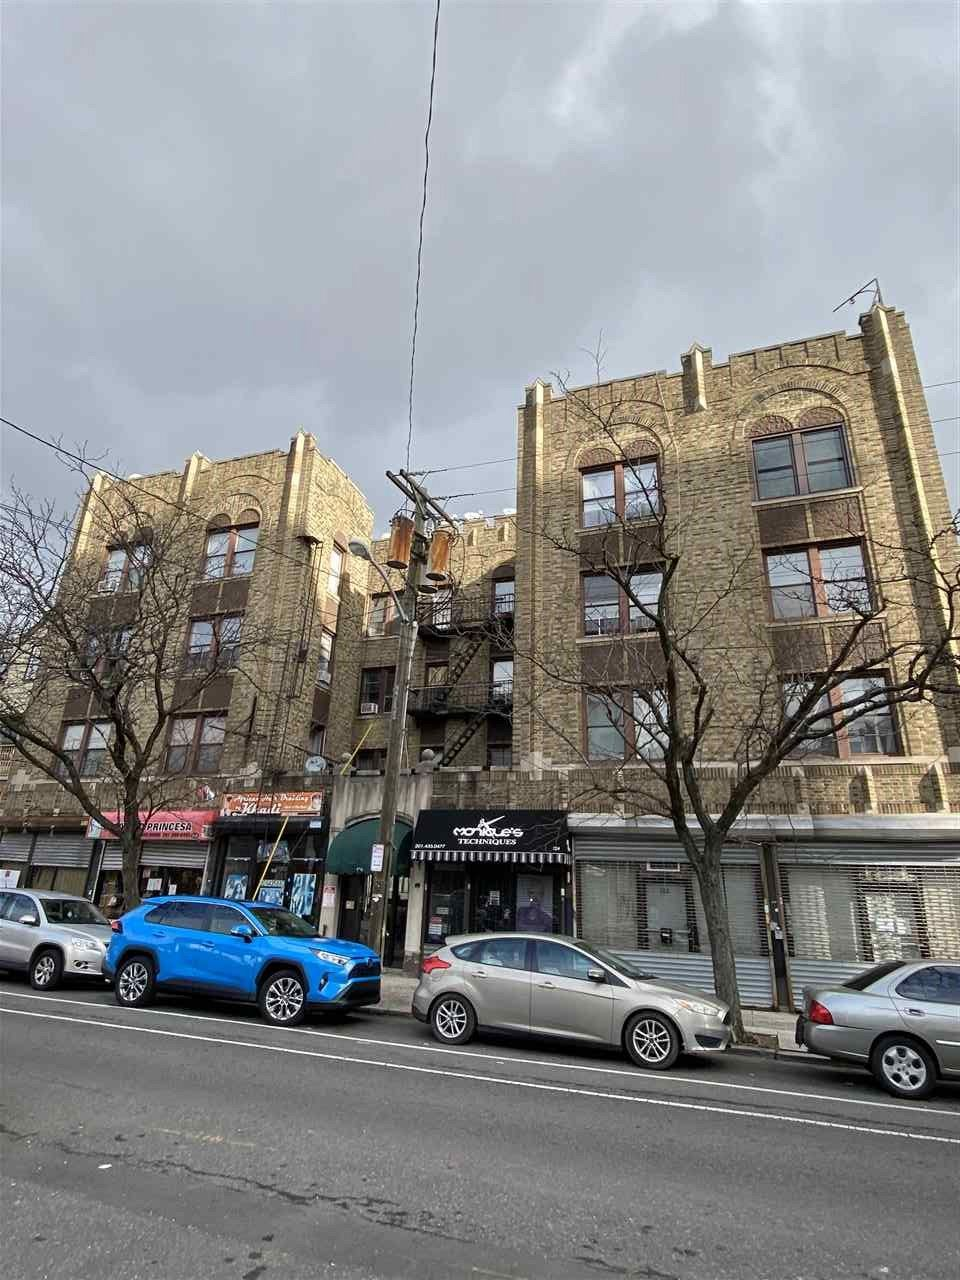 124 STORMS AVE #4N, Jersey City, NJ 07306 - MLS#: 210000646